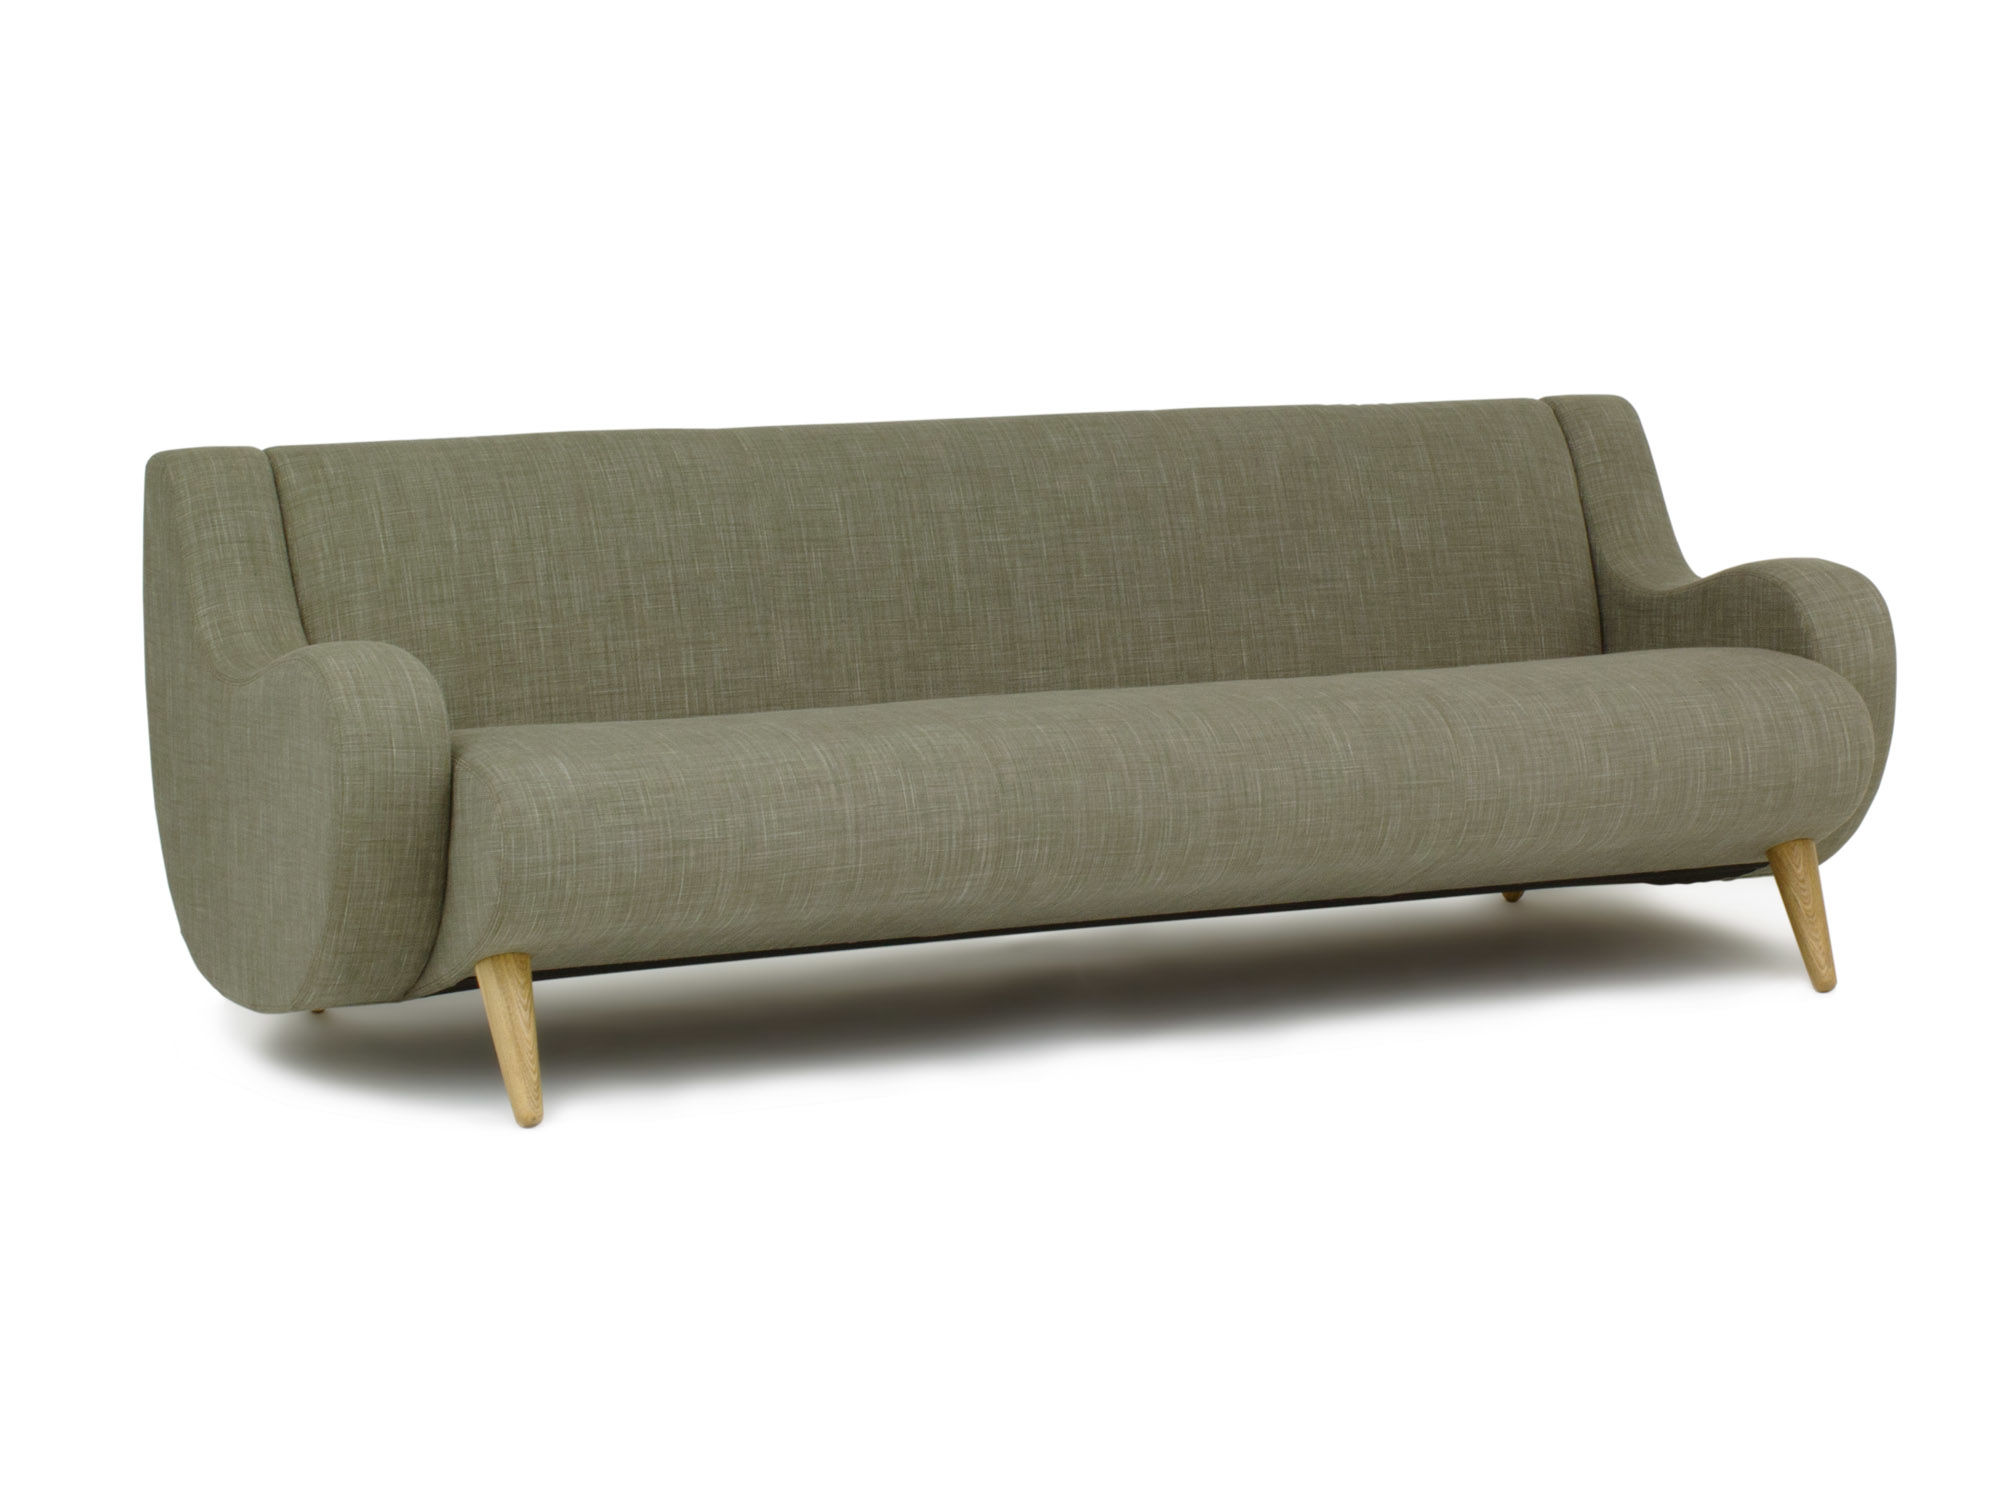 best of crate and barrel lounge sofa collection-Wonderful Crate and Barrel Lounge sofa Wallpaper